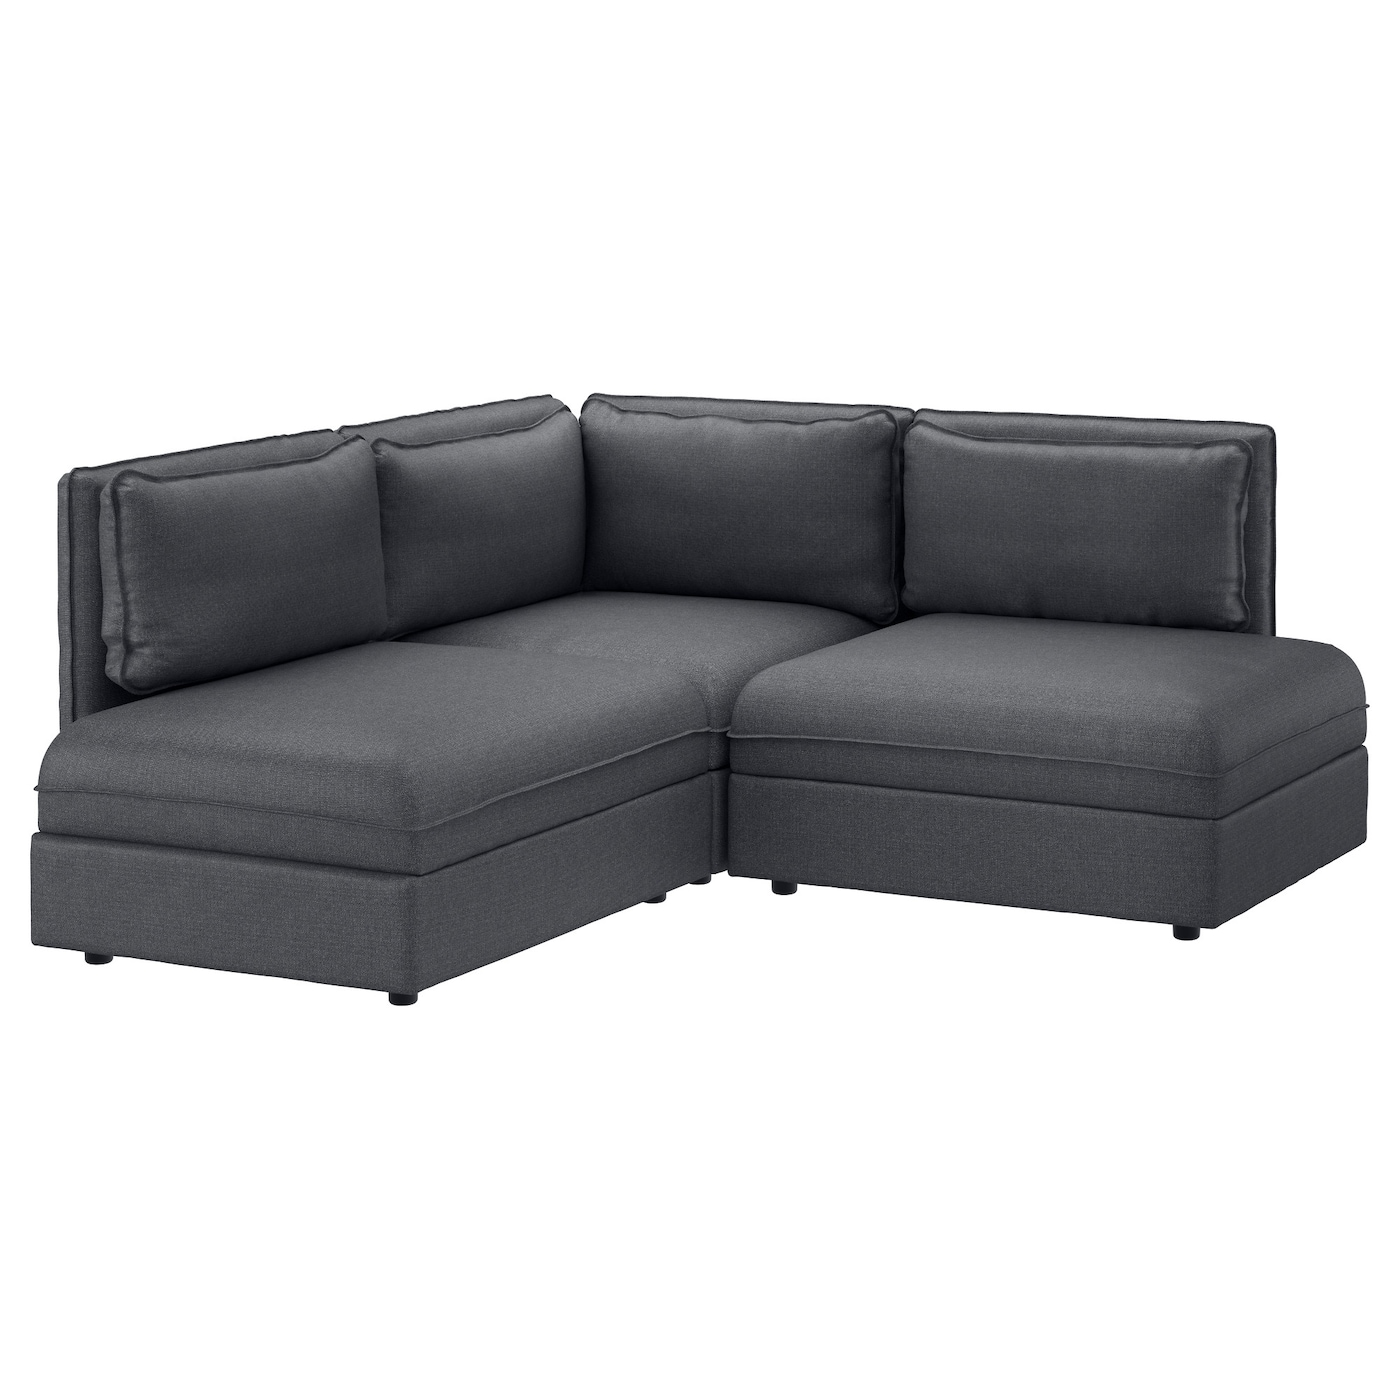 corner furniture. ikea vallentuna 3seat corner sofa furniture